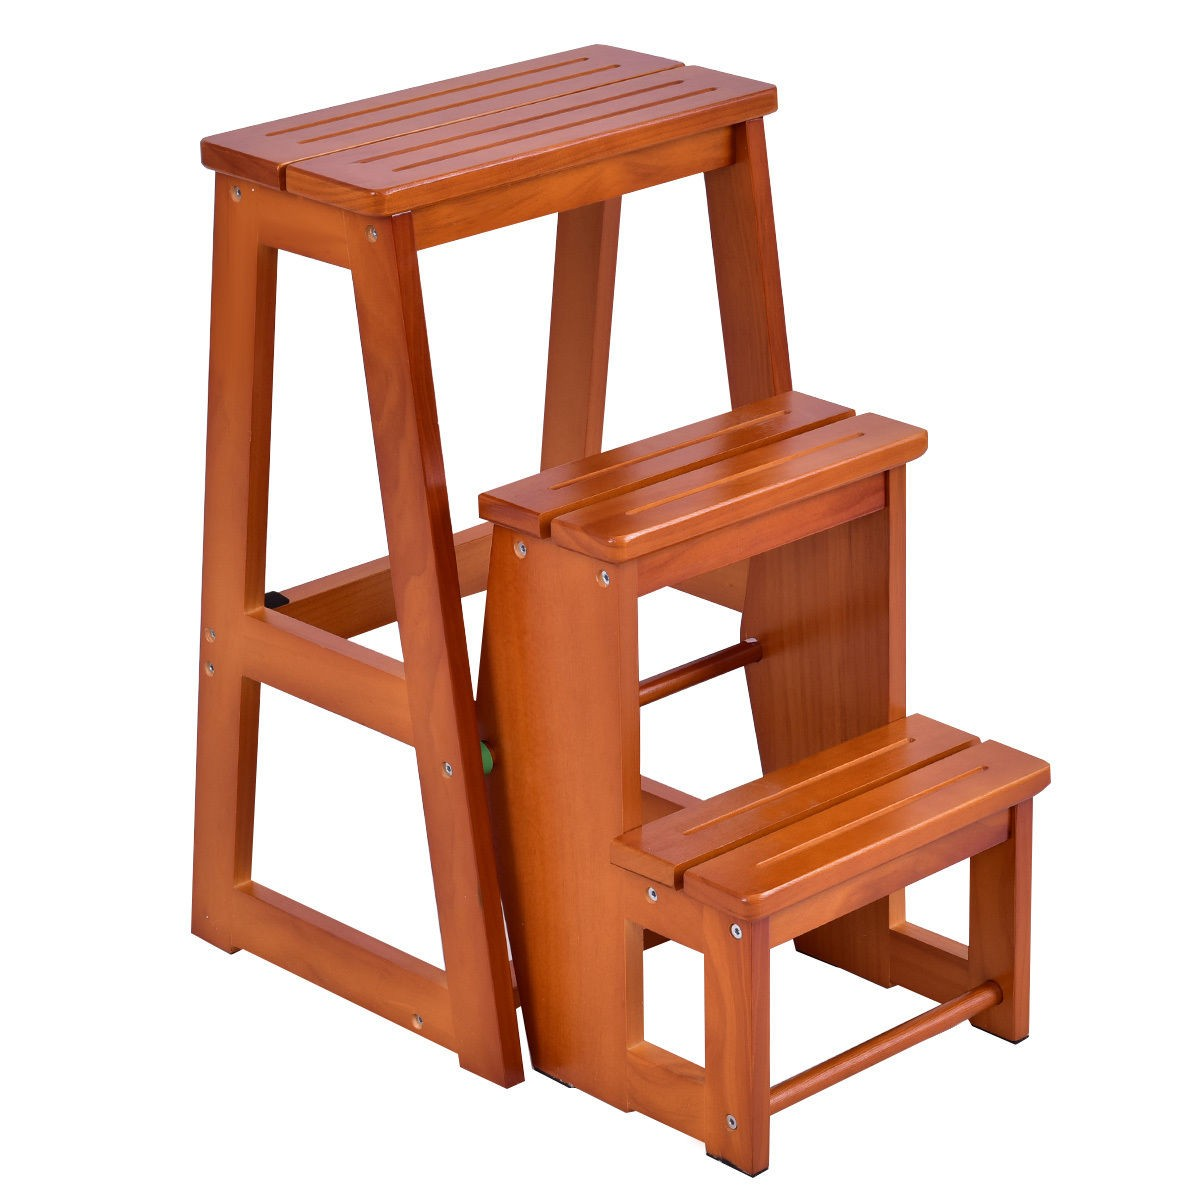 3 tiers step stool folding solid wood platform kitchen ladder bench seat utility ebay. Black Bedroom Furniture Sets. Home Design Ideas